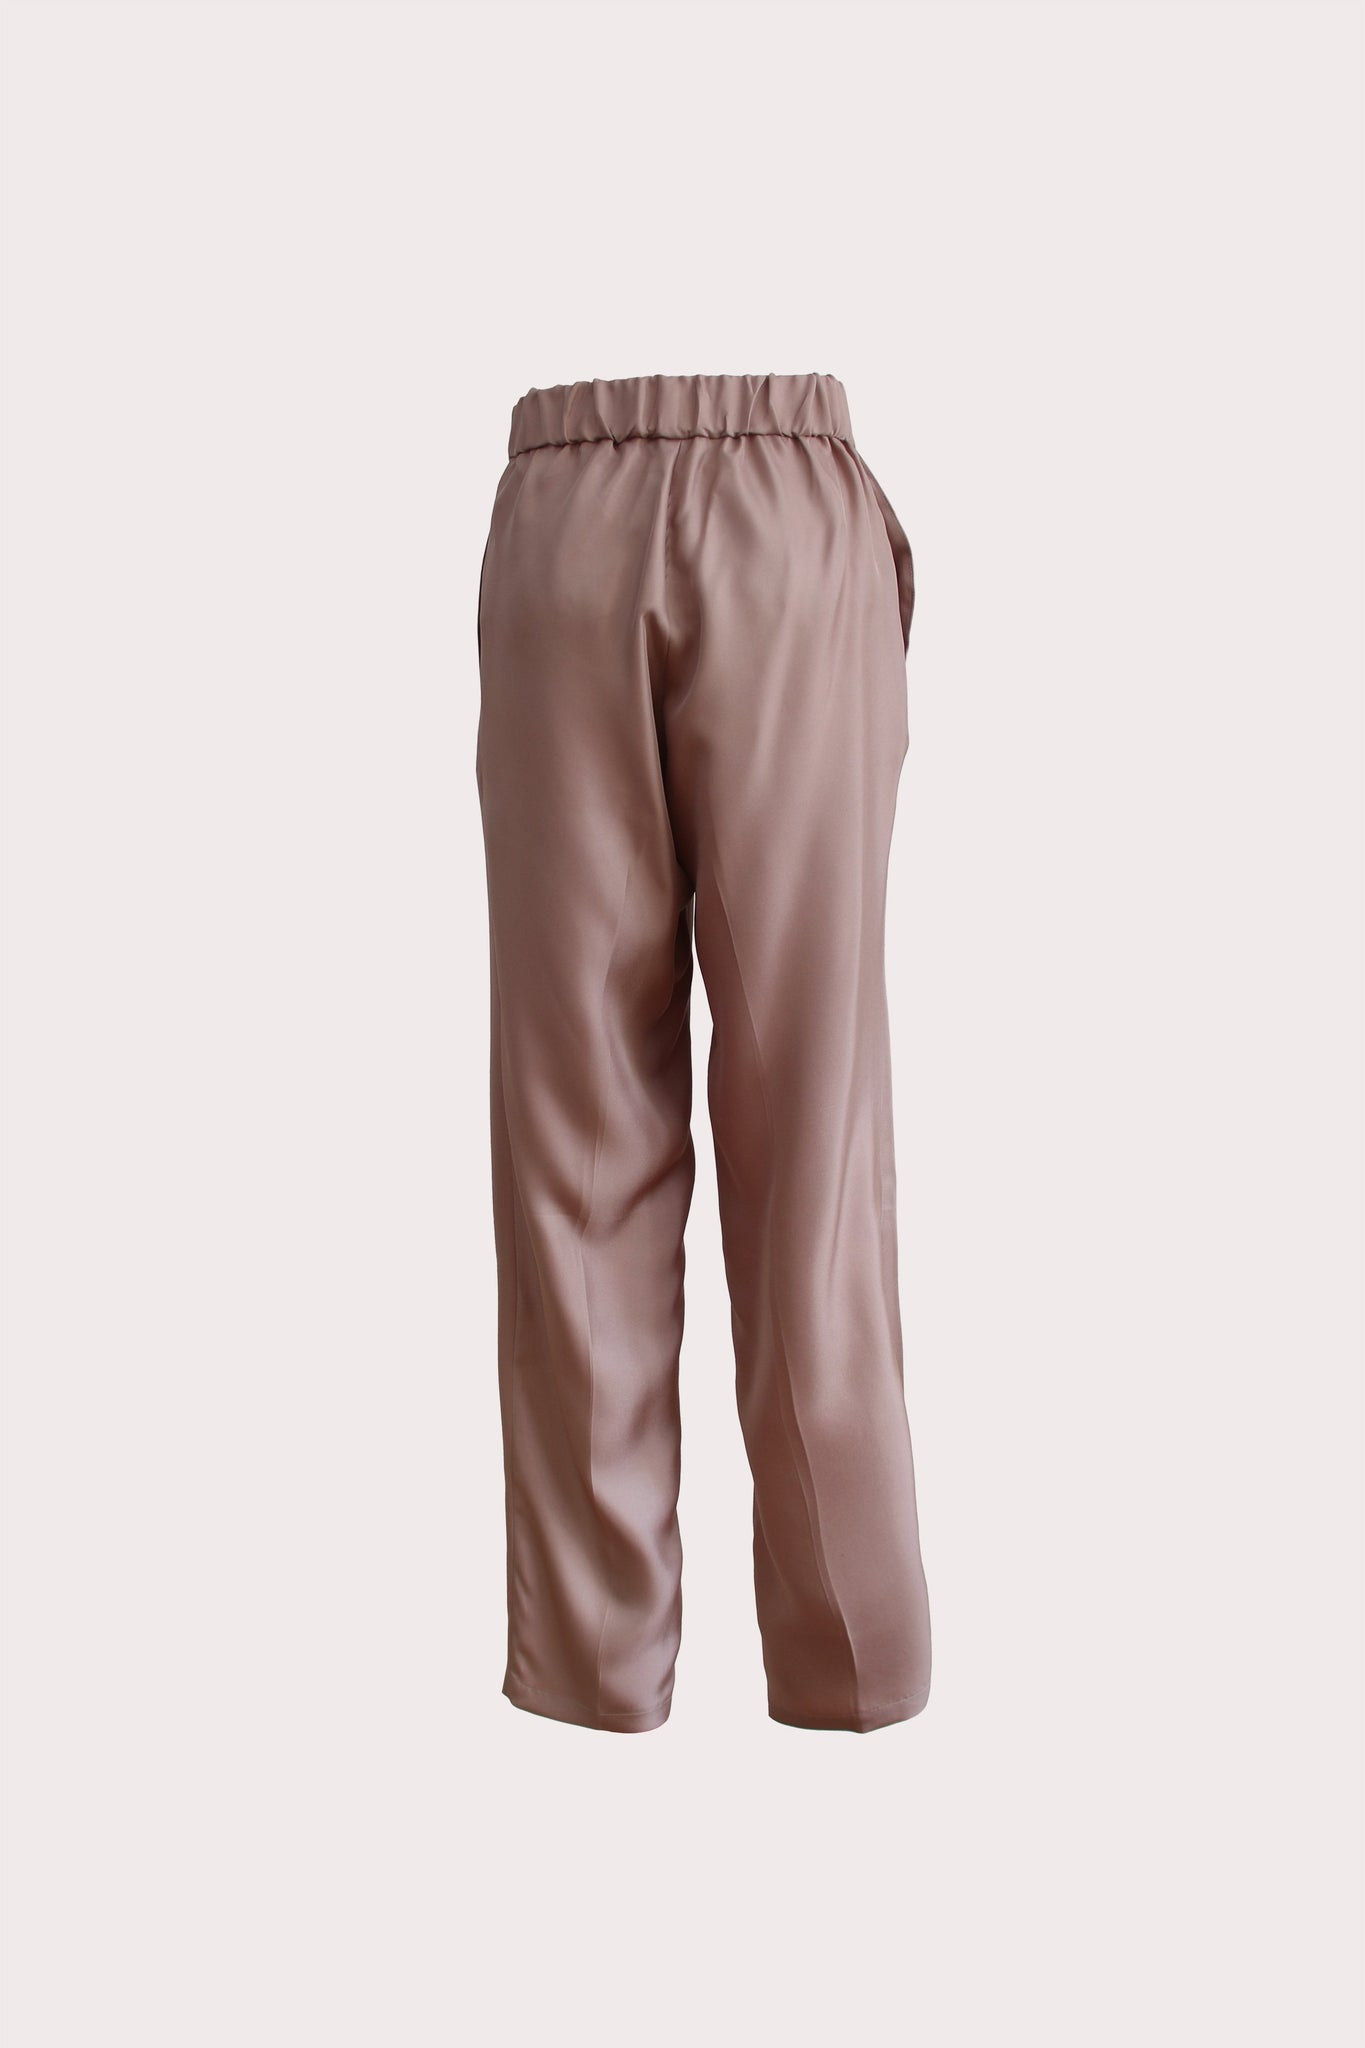 Katyusha Cocoa simple pants